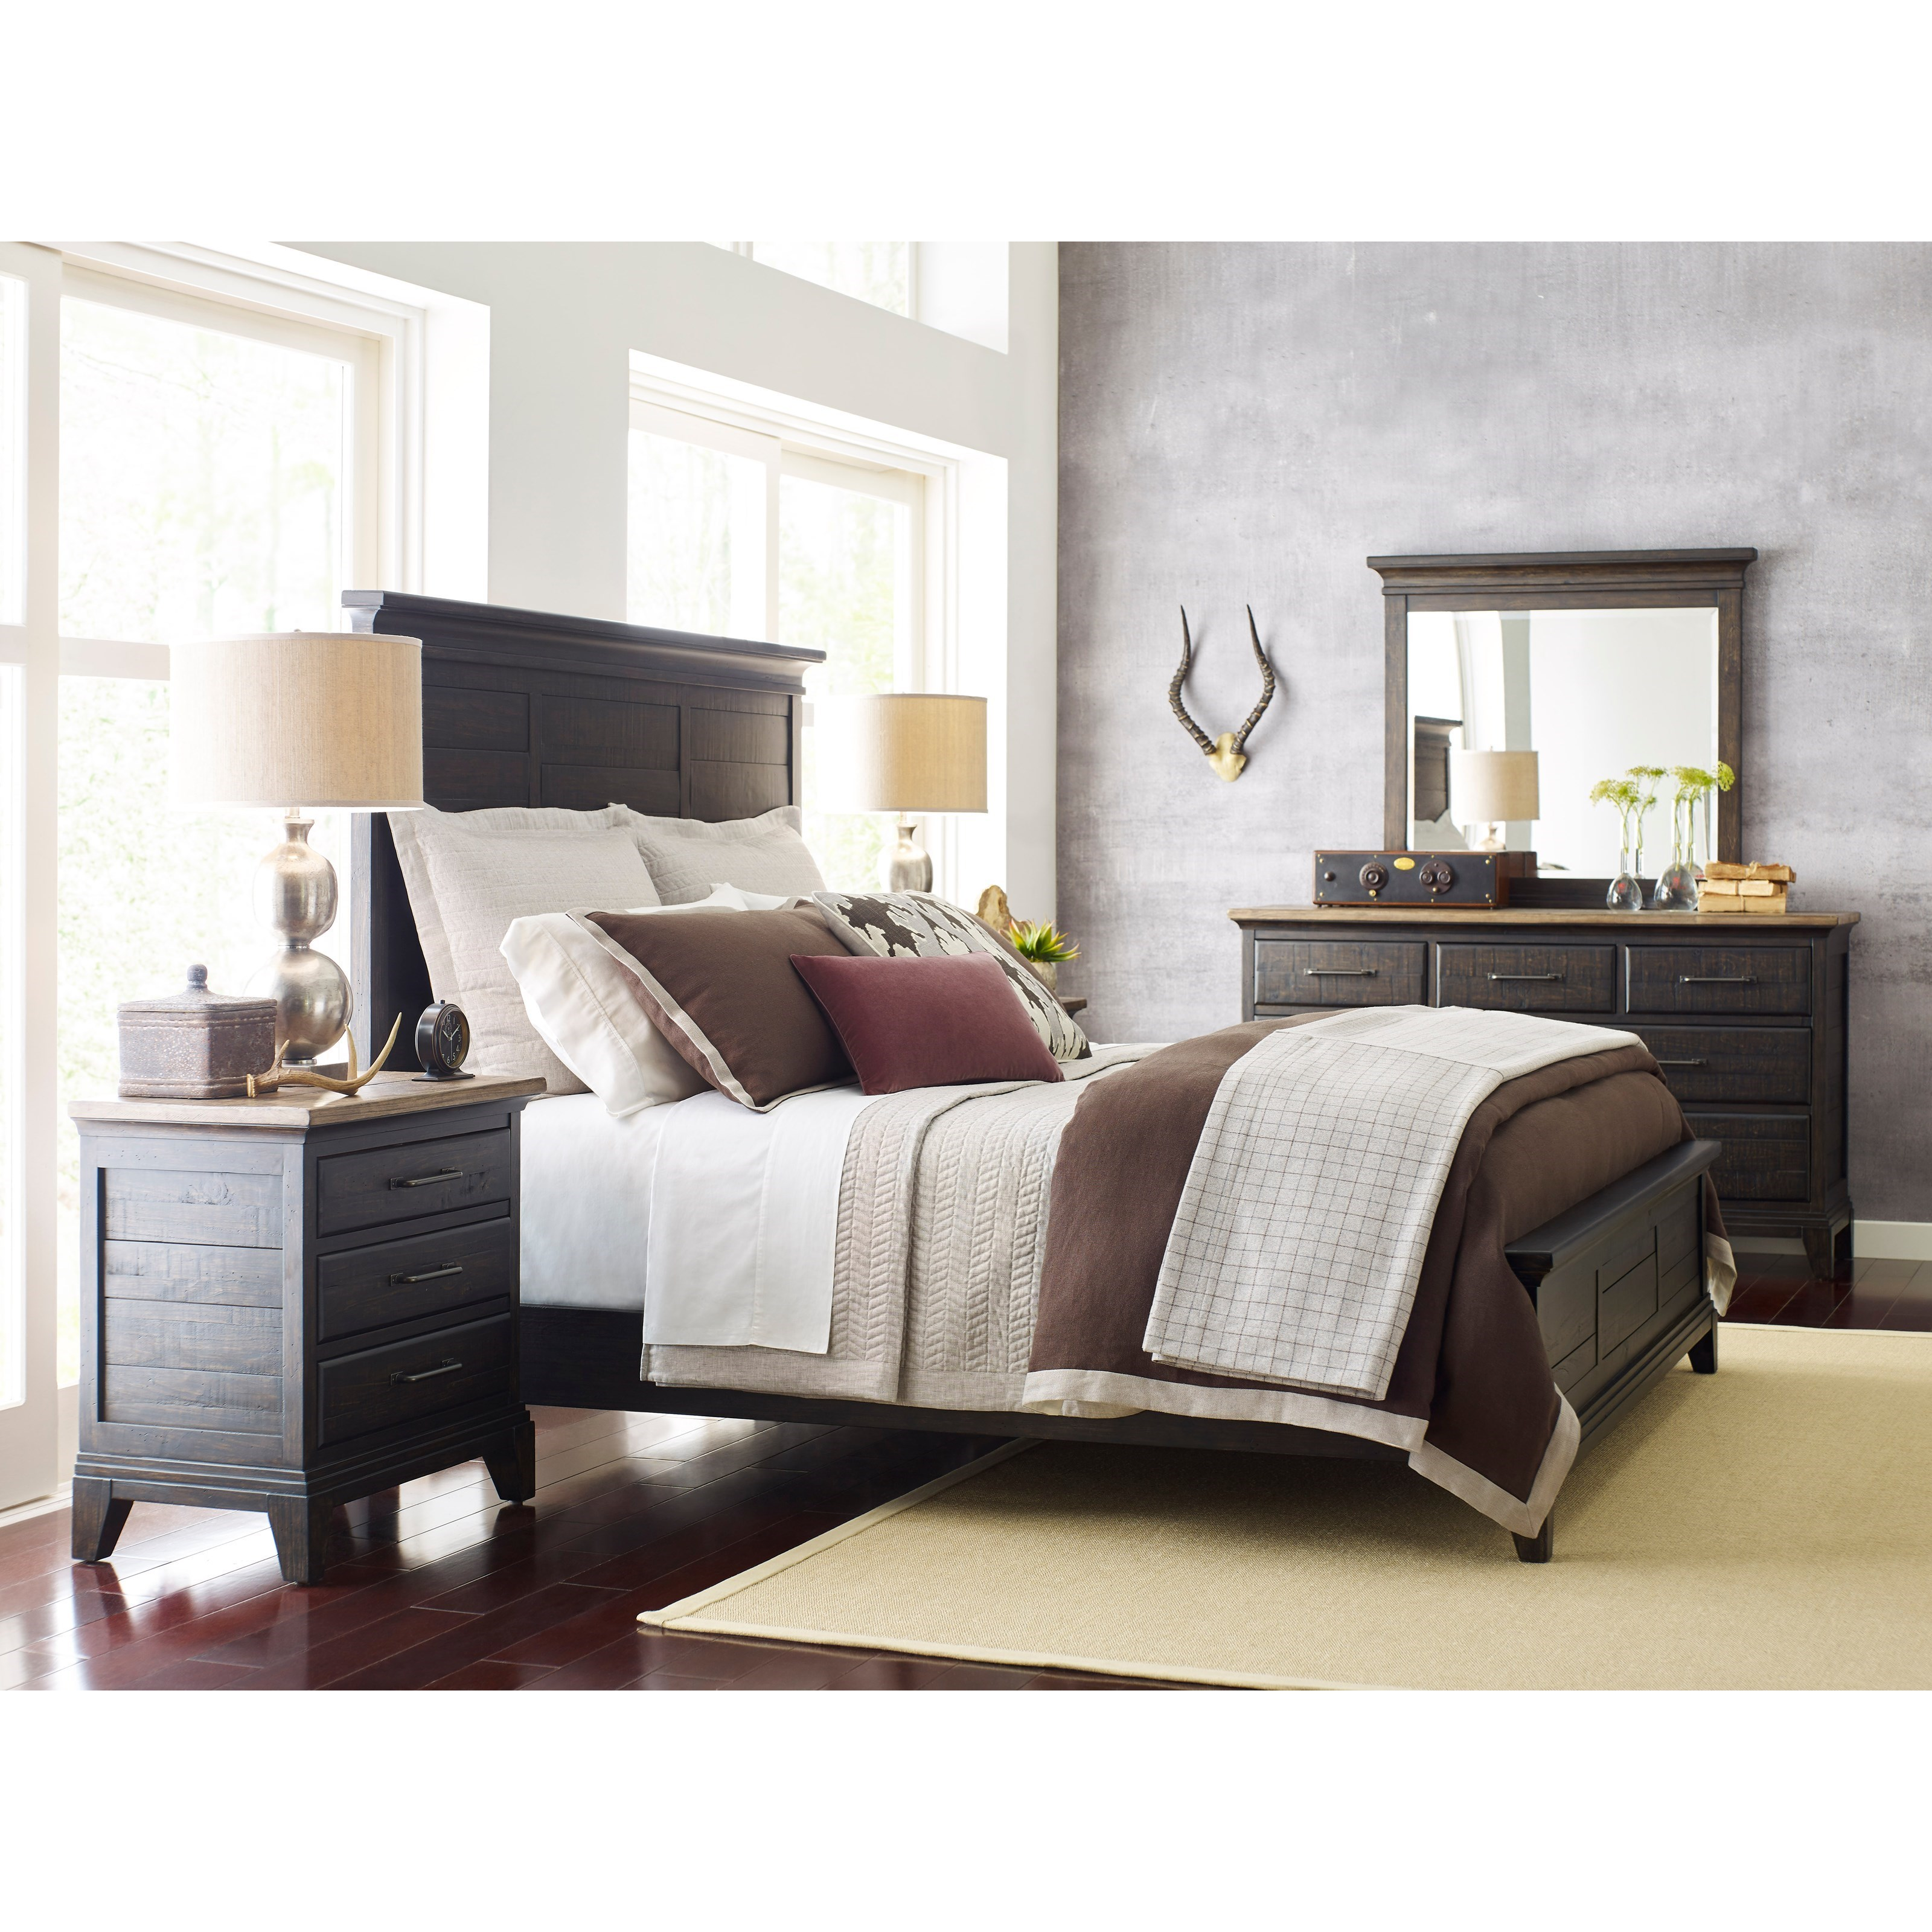 Plank Road Queen Bedroom Group by Kincaid Furniture at Johnny Janosik